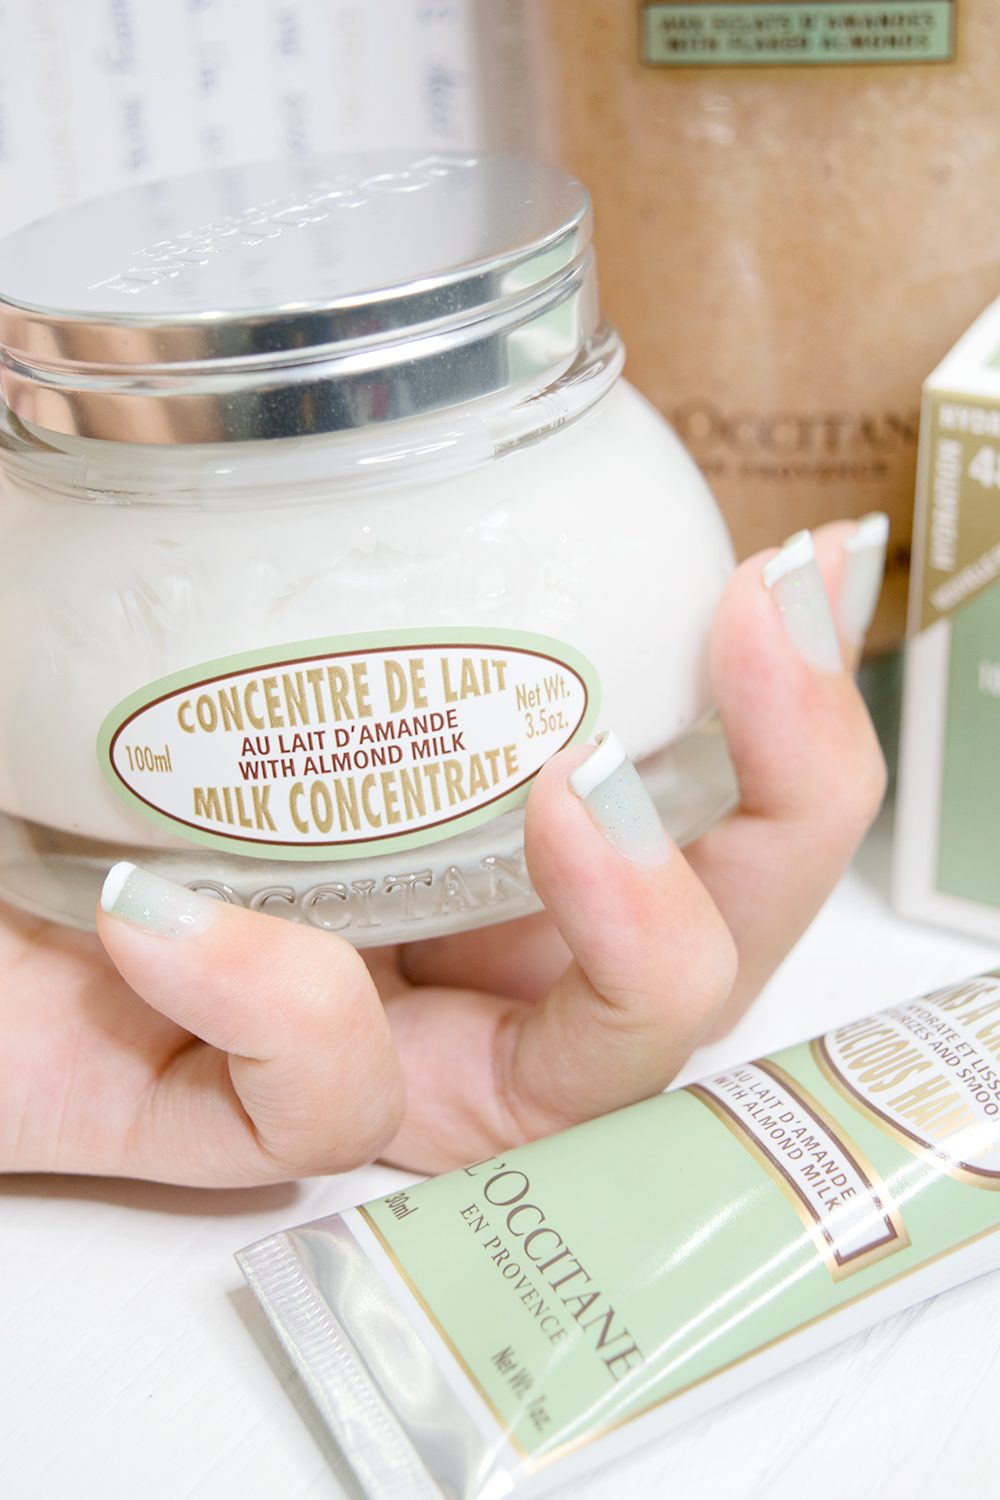 Gifted with Love by L'Occitane